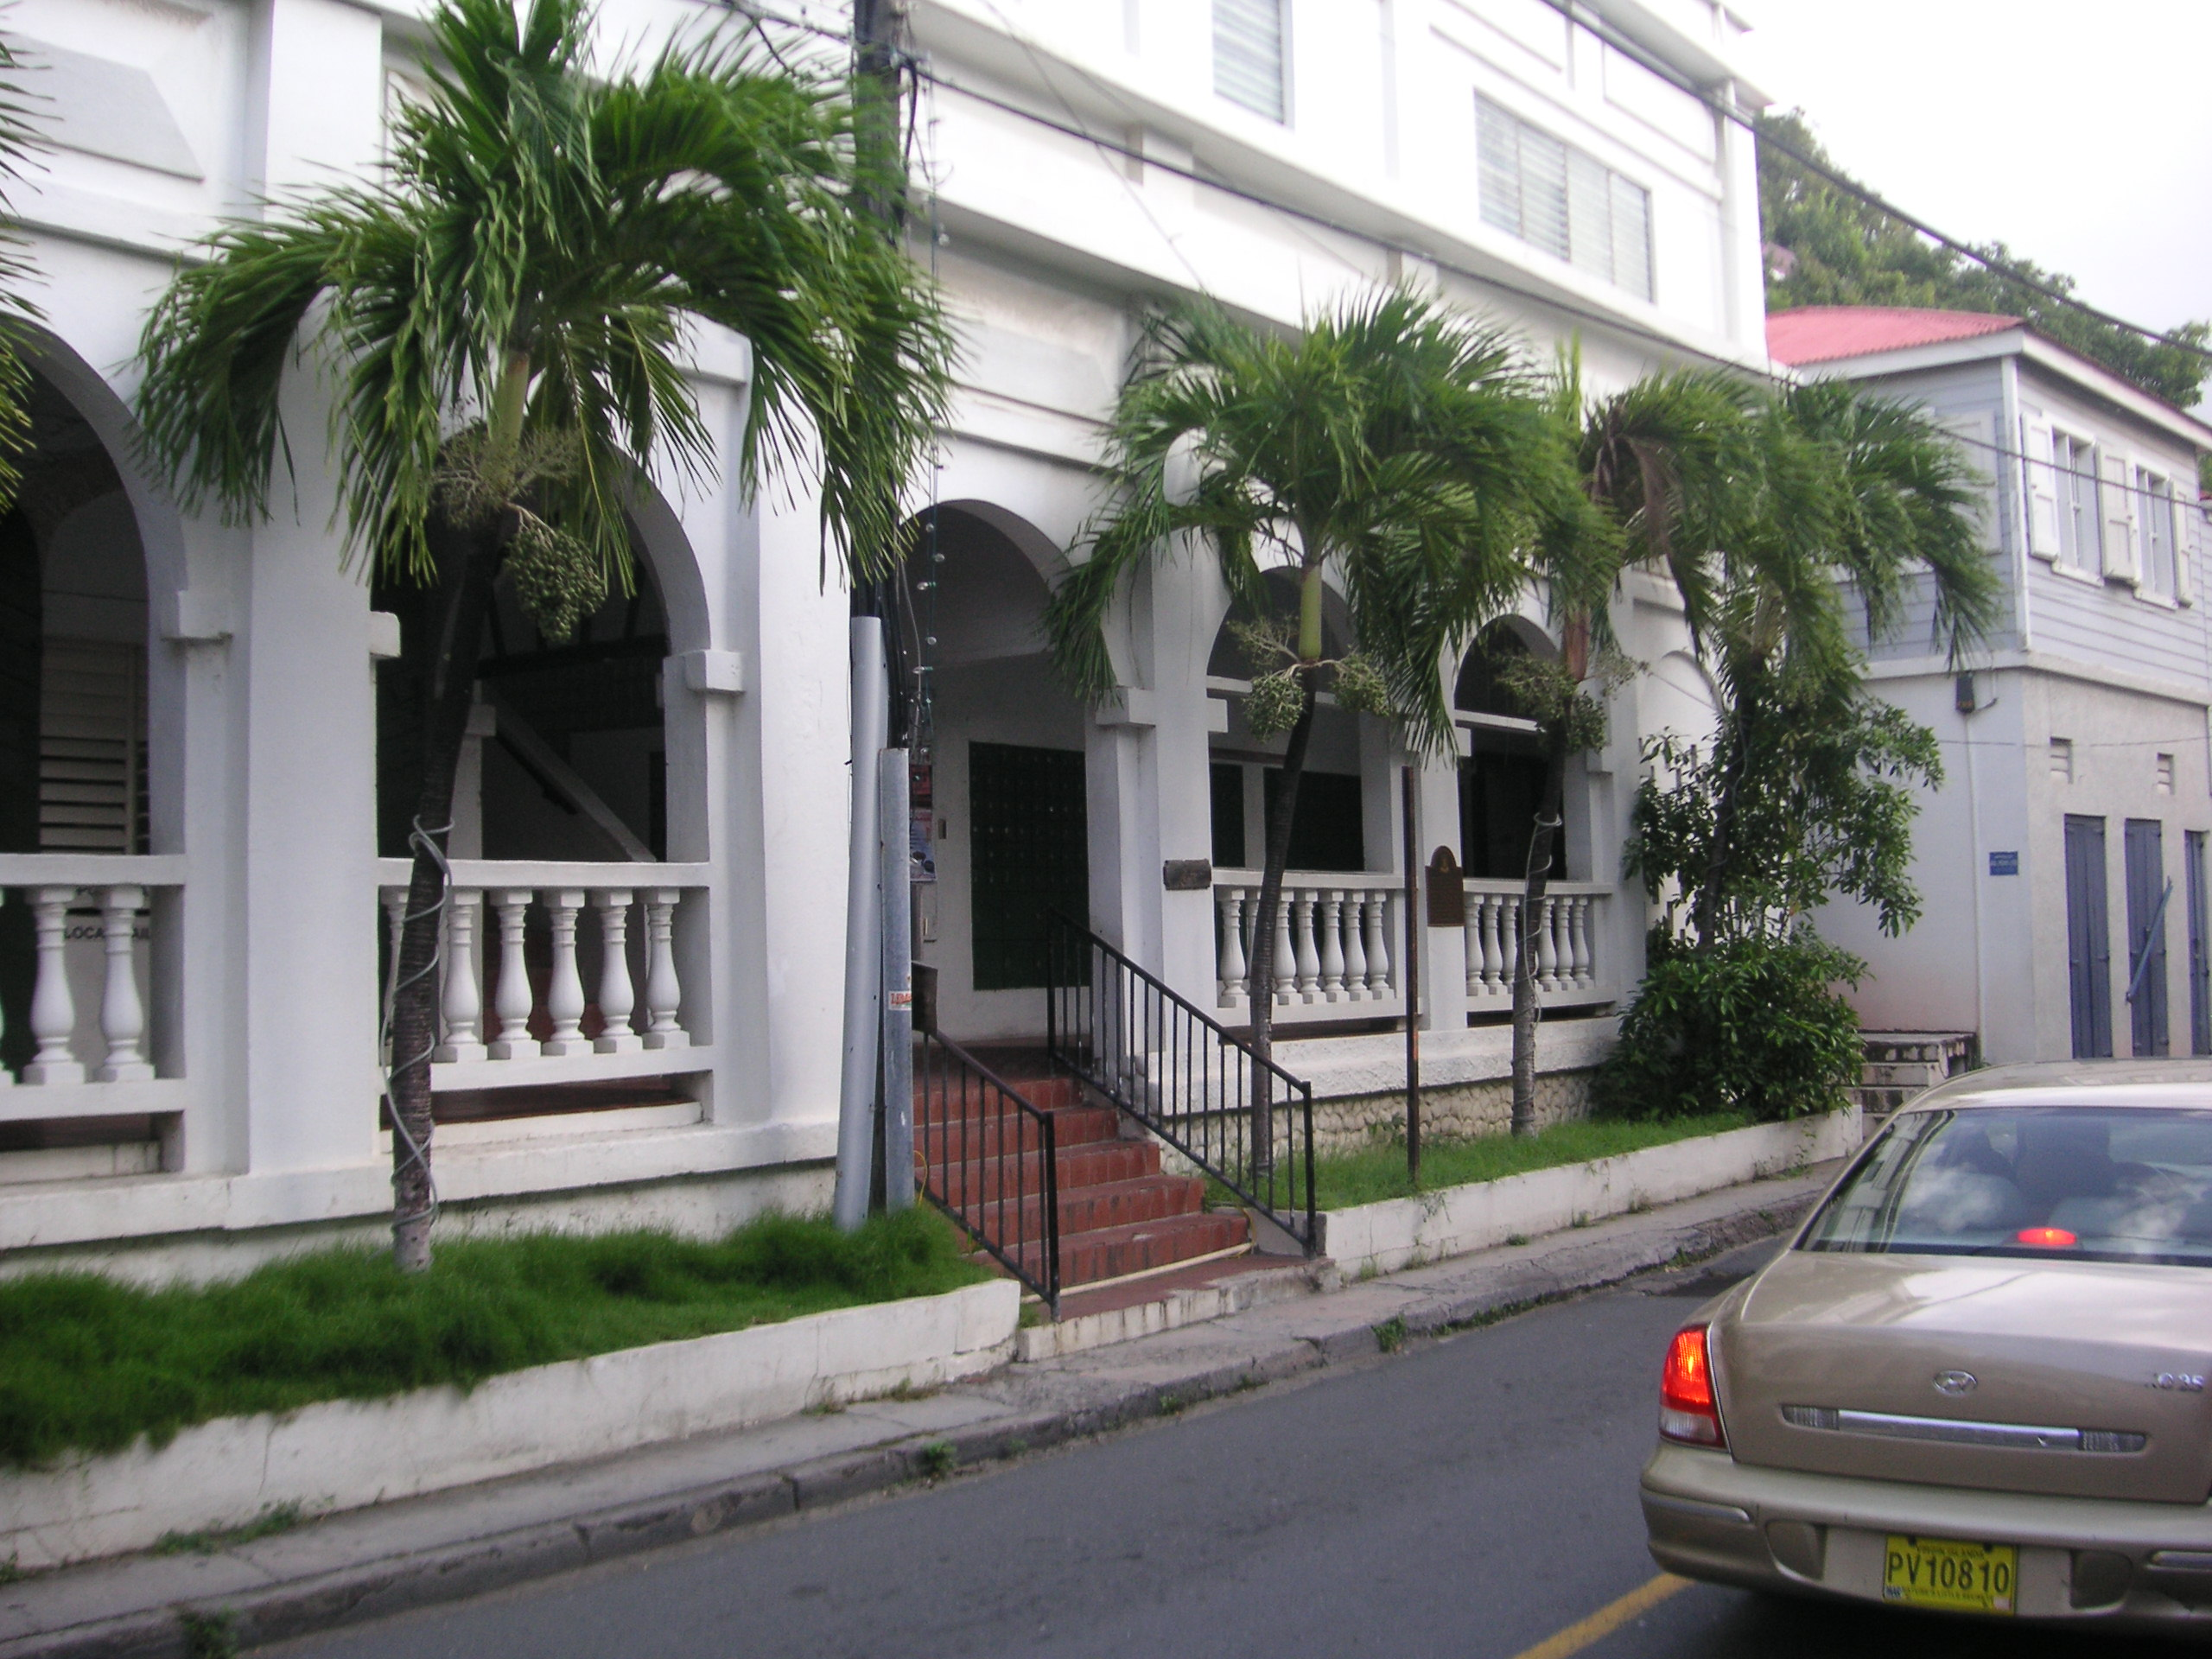 The Old Post Office on Main Street in Road Town, Tortola. Photo taken on August 10, 2006, by Colin Riegels.